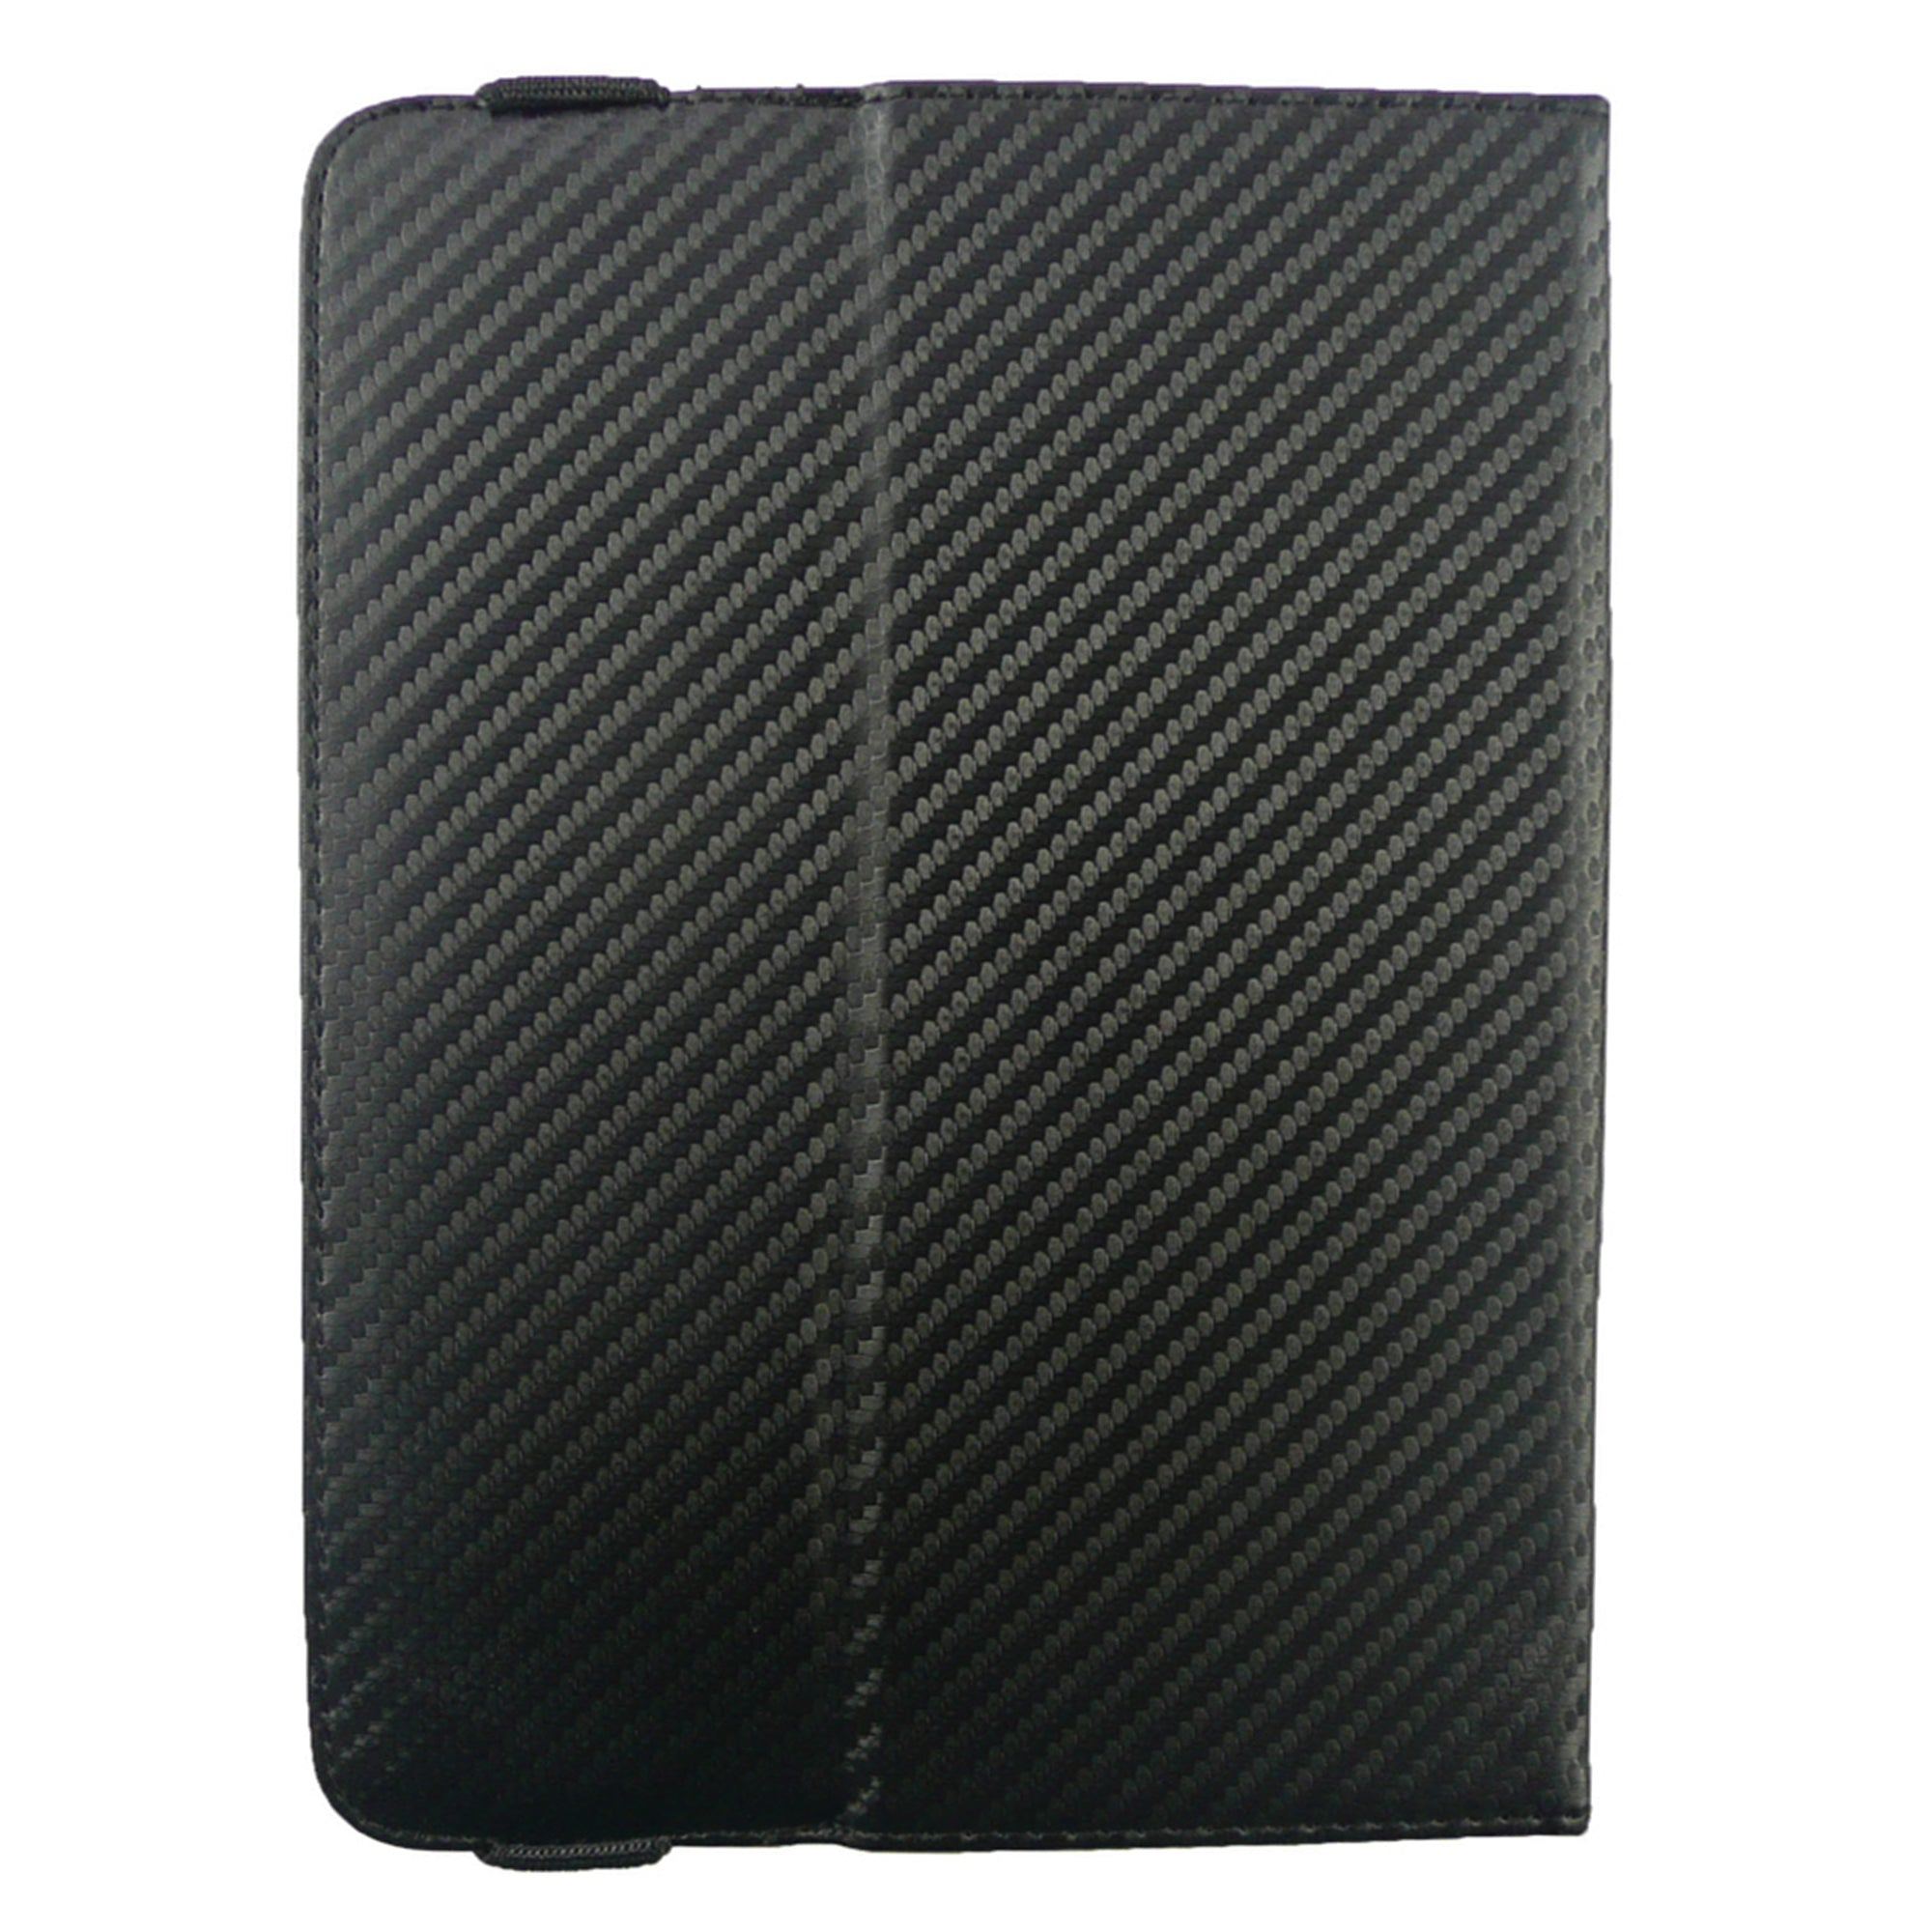 Black Carbon Universal Tablet Case